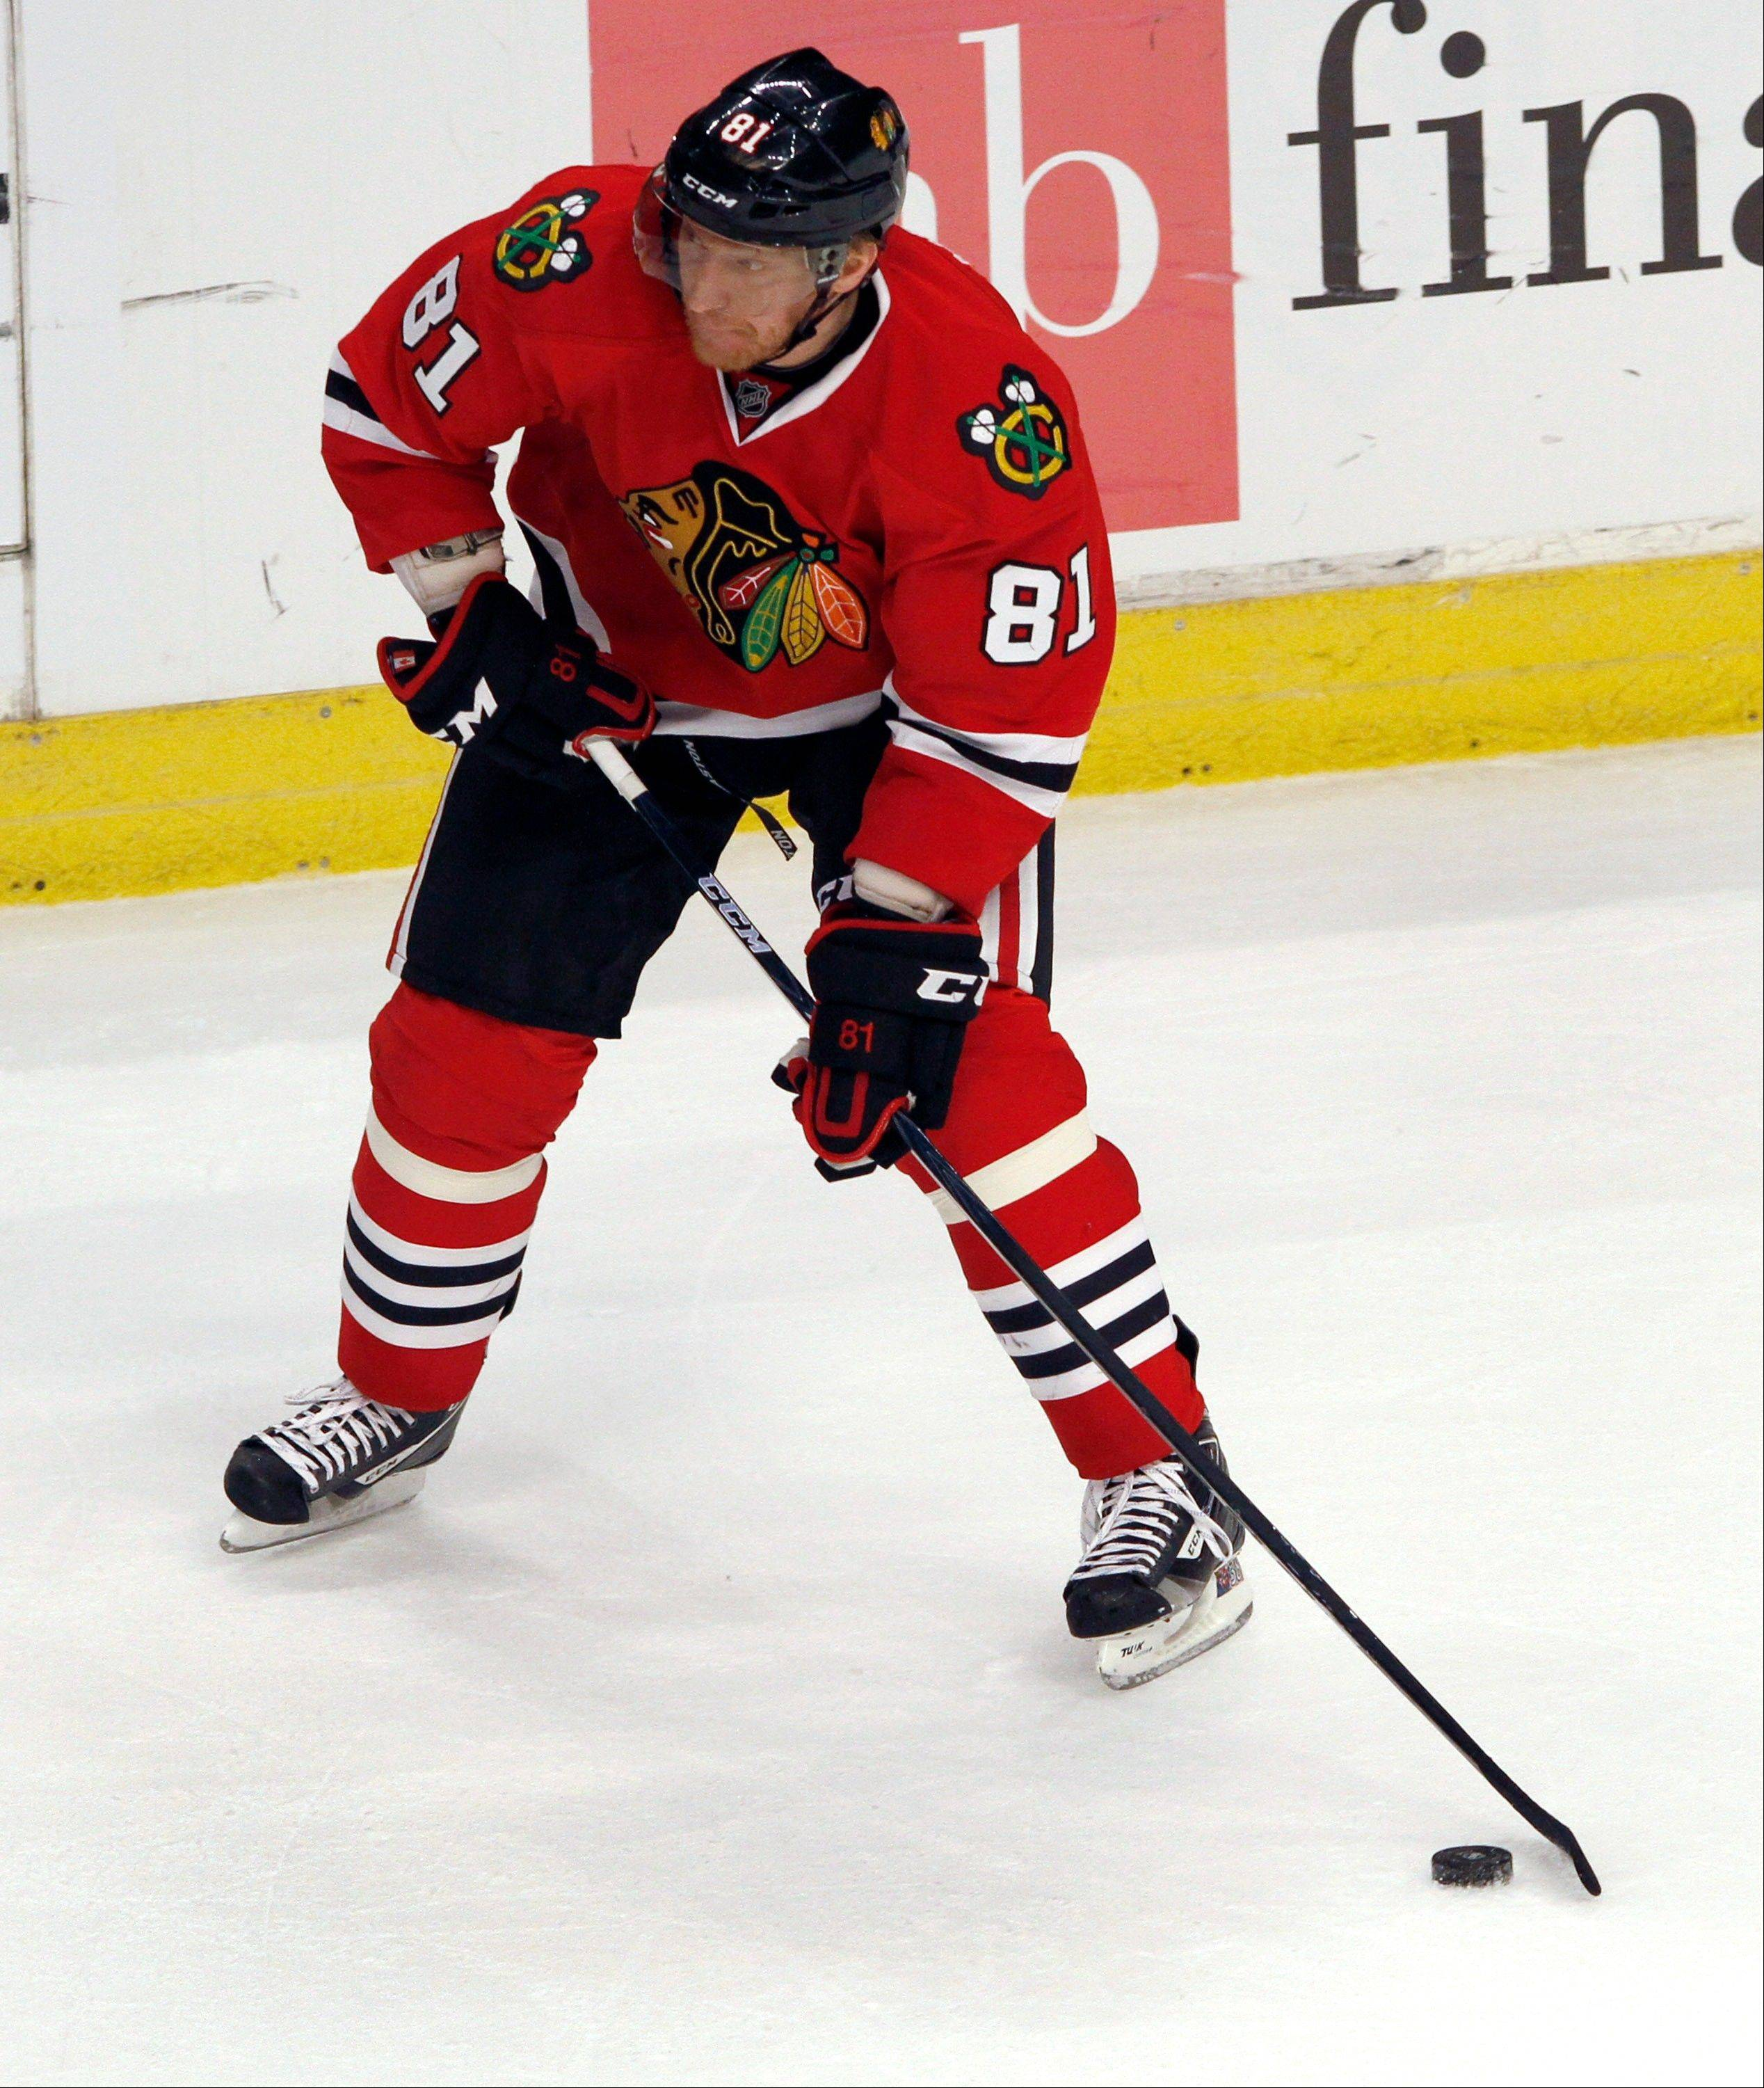 Looks like Hossa's out for Monday